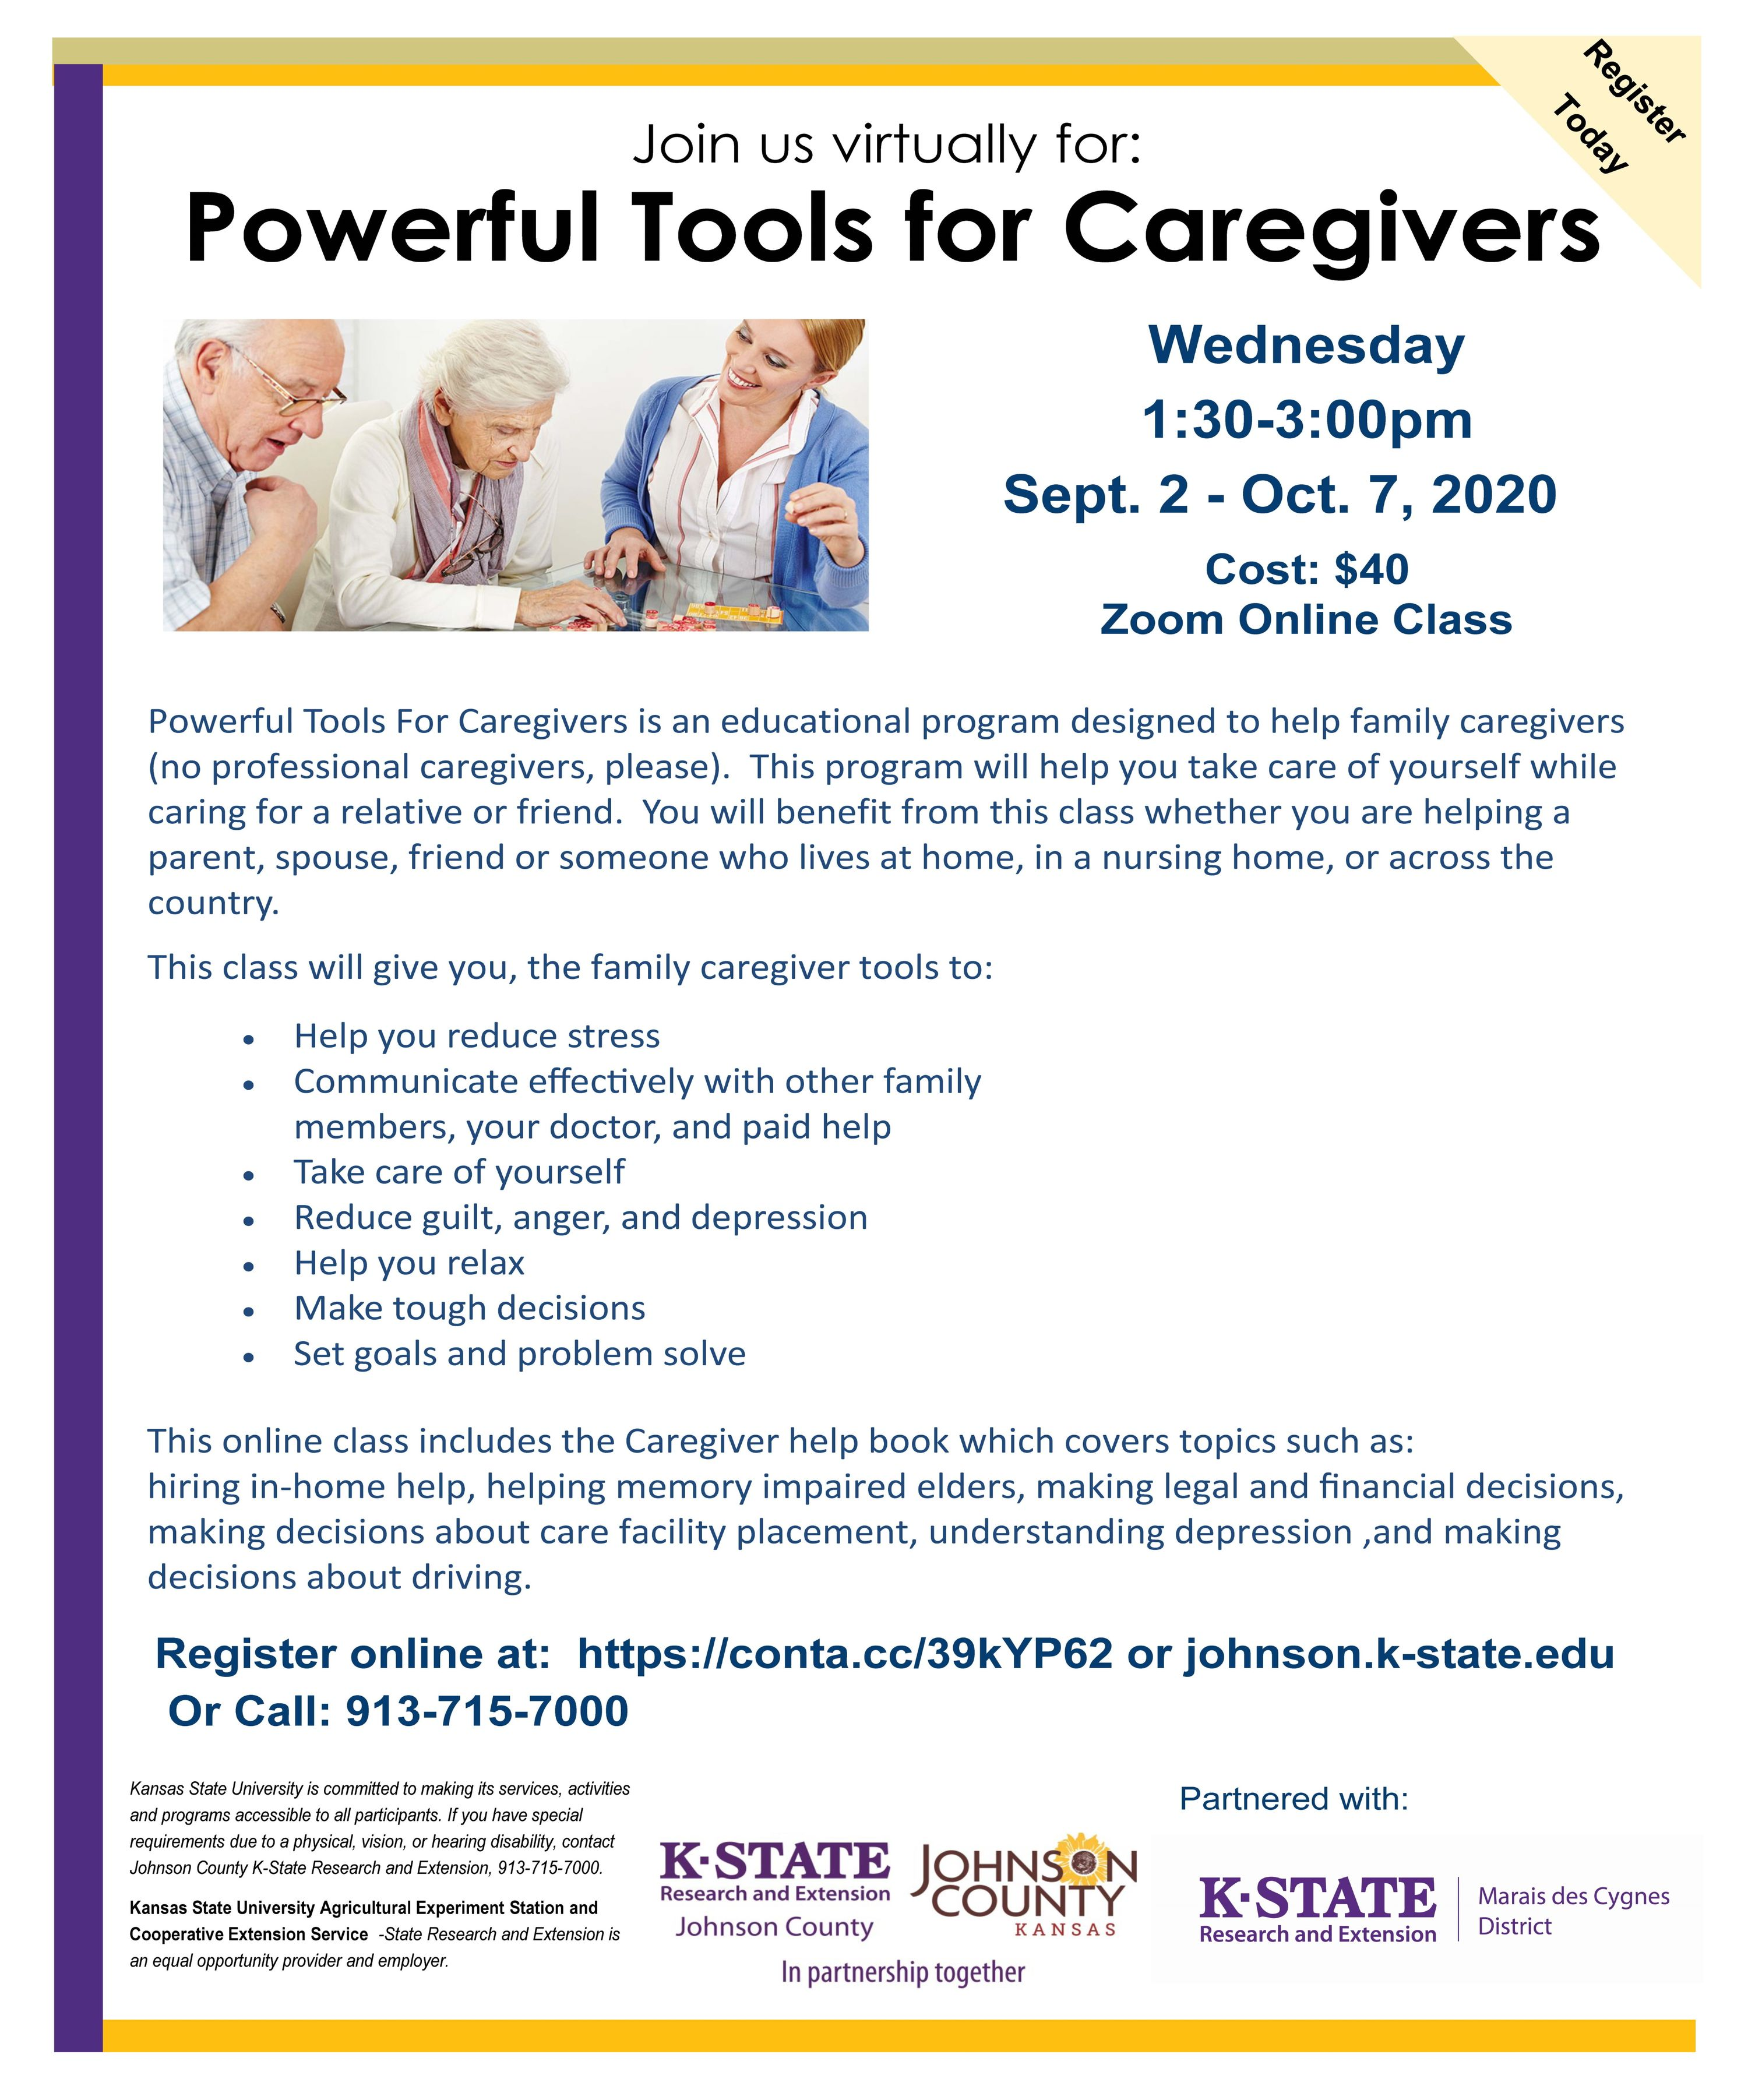 2020 Powerful Tools for Caregivers